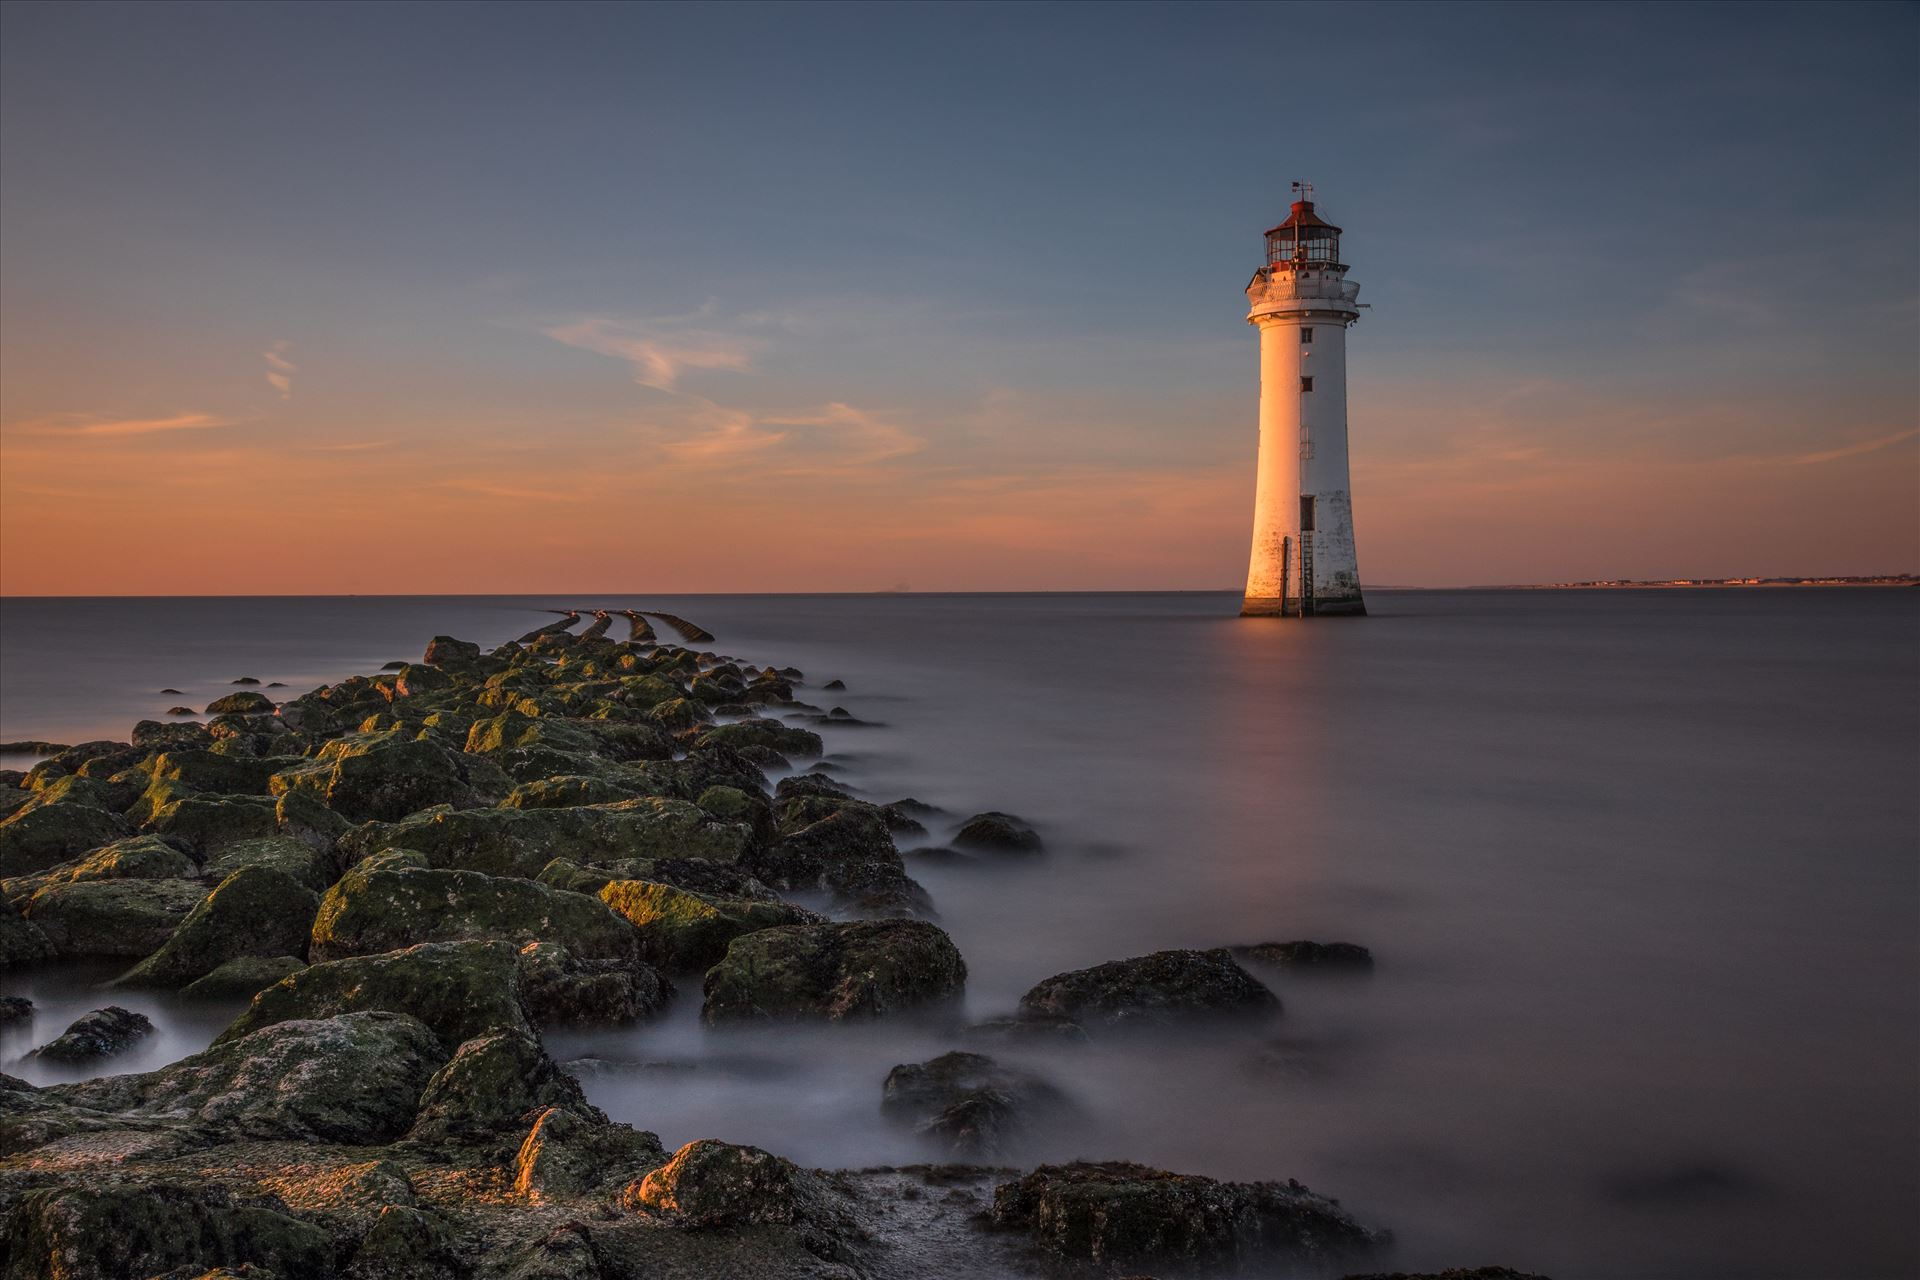 Perch Rock Lighthouse and Crosby Beach